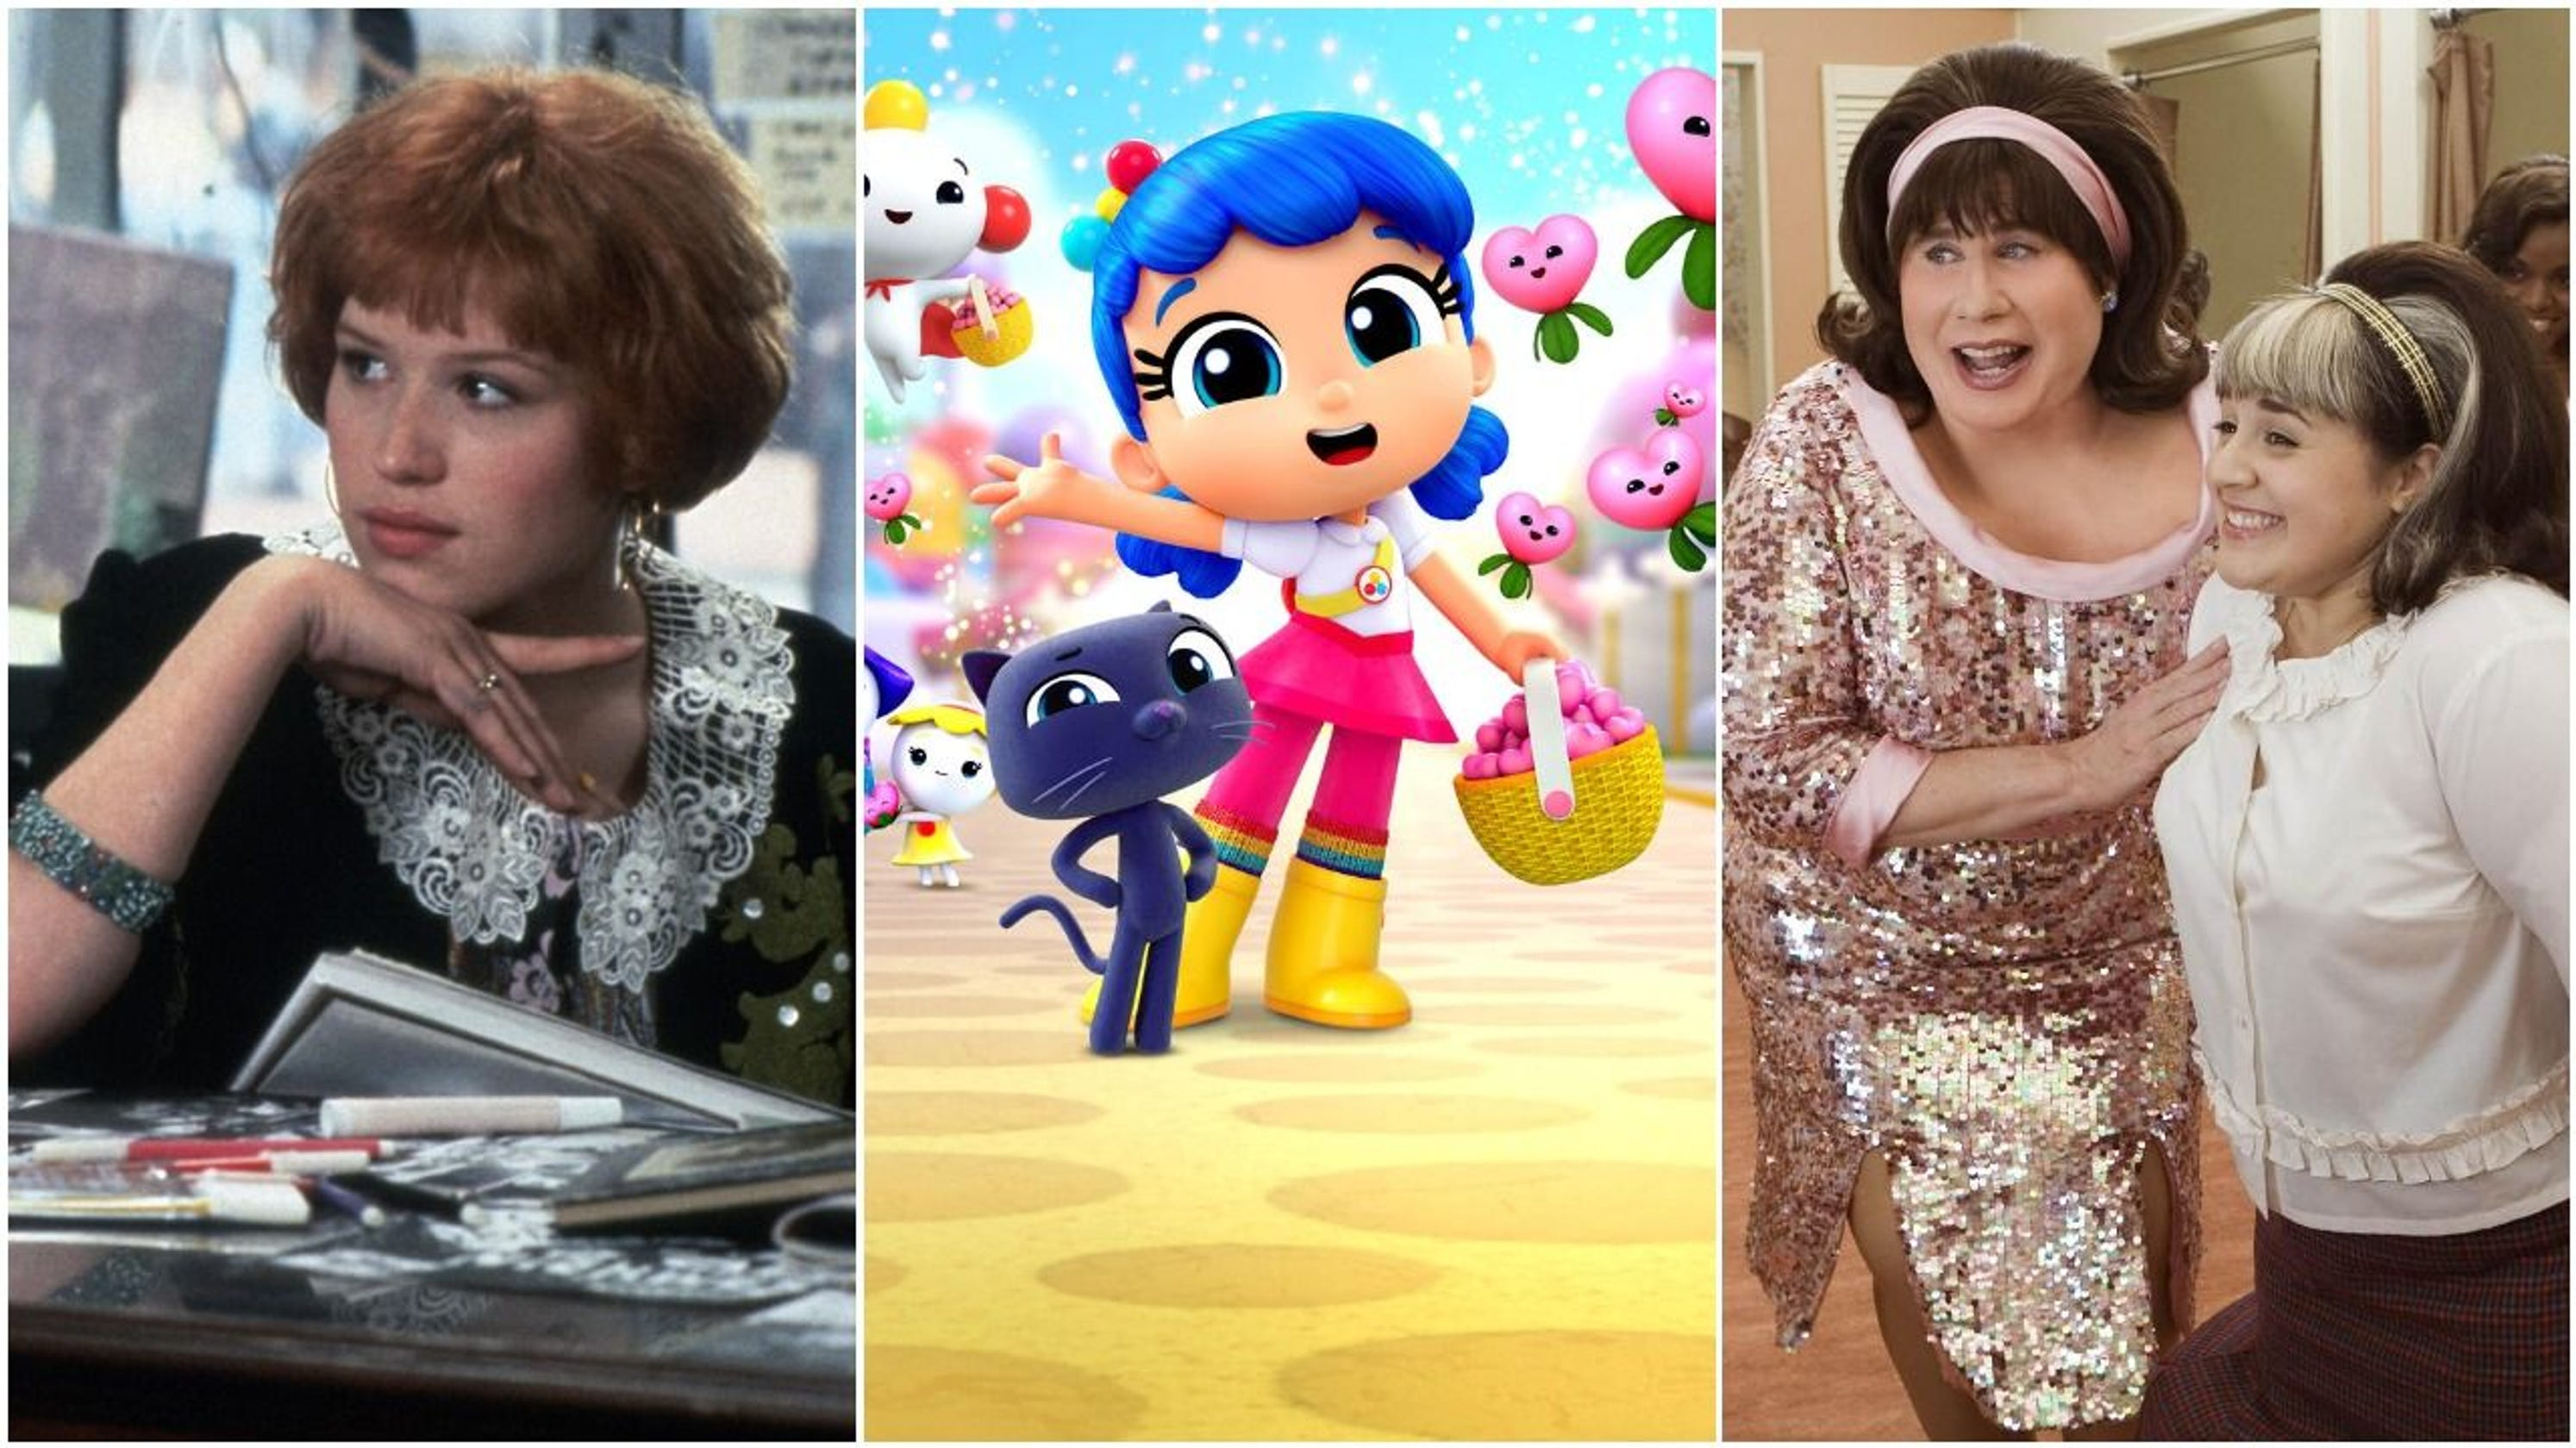 Best Netflix shows, movies for kids and families to watch in